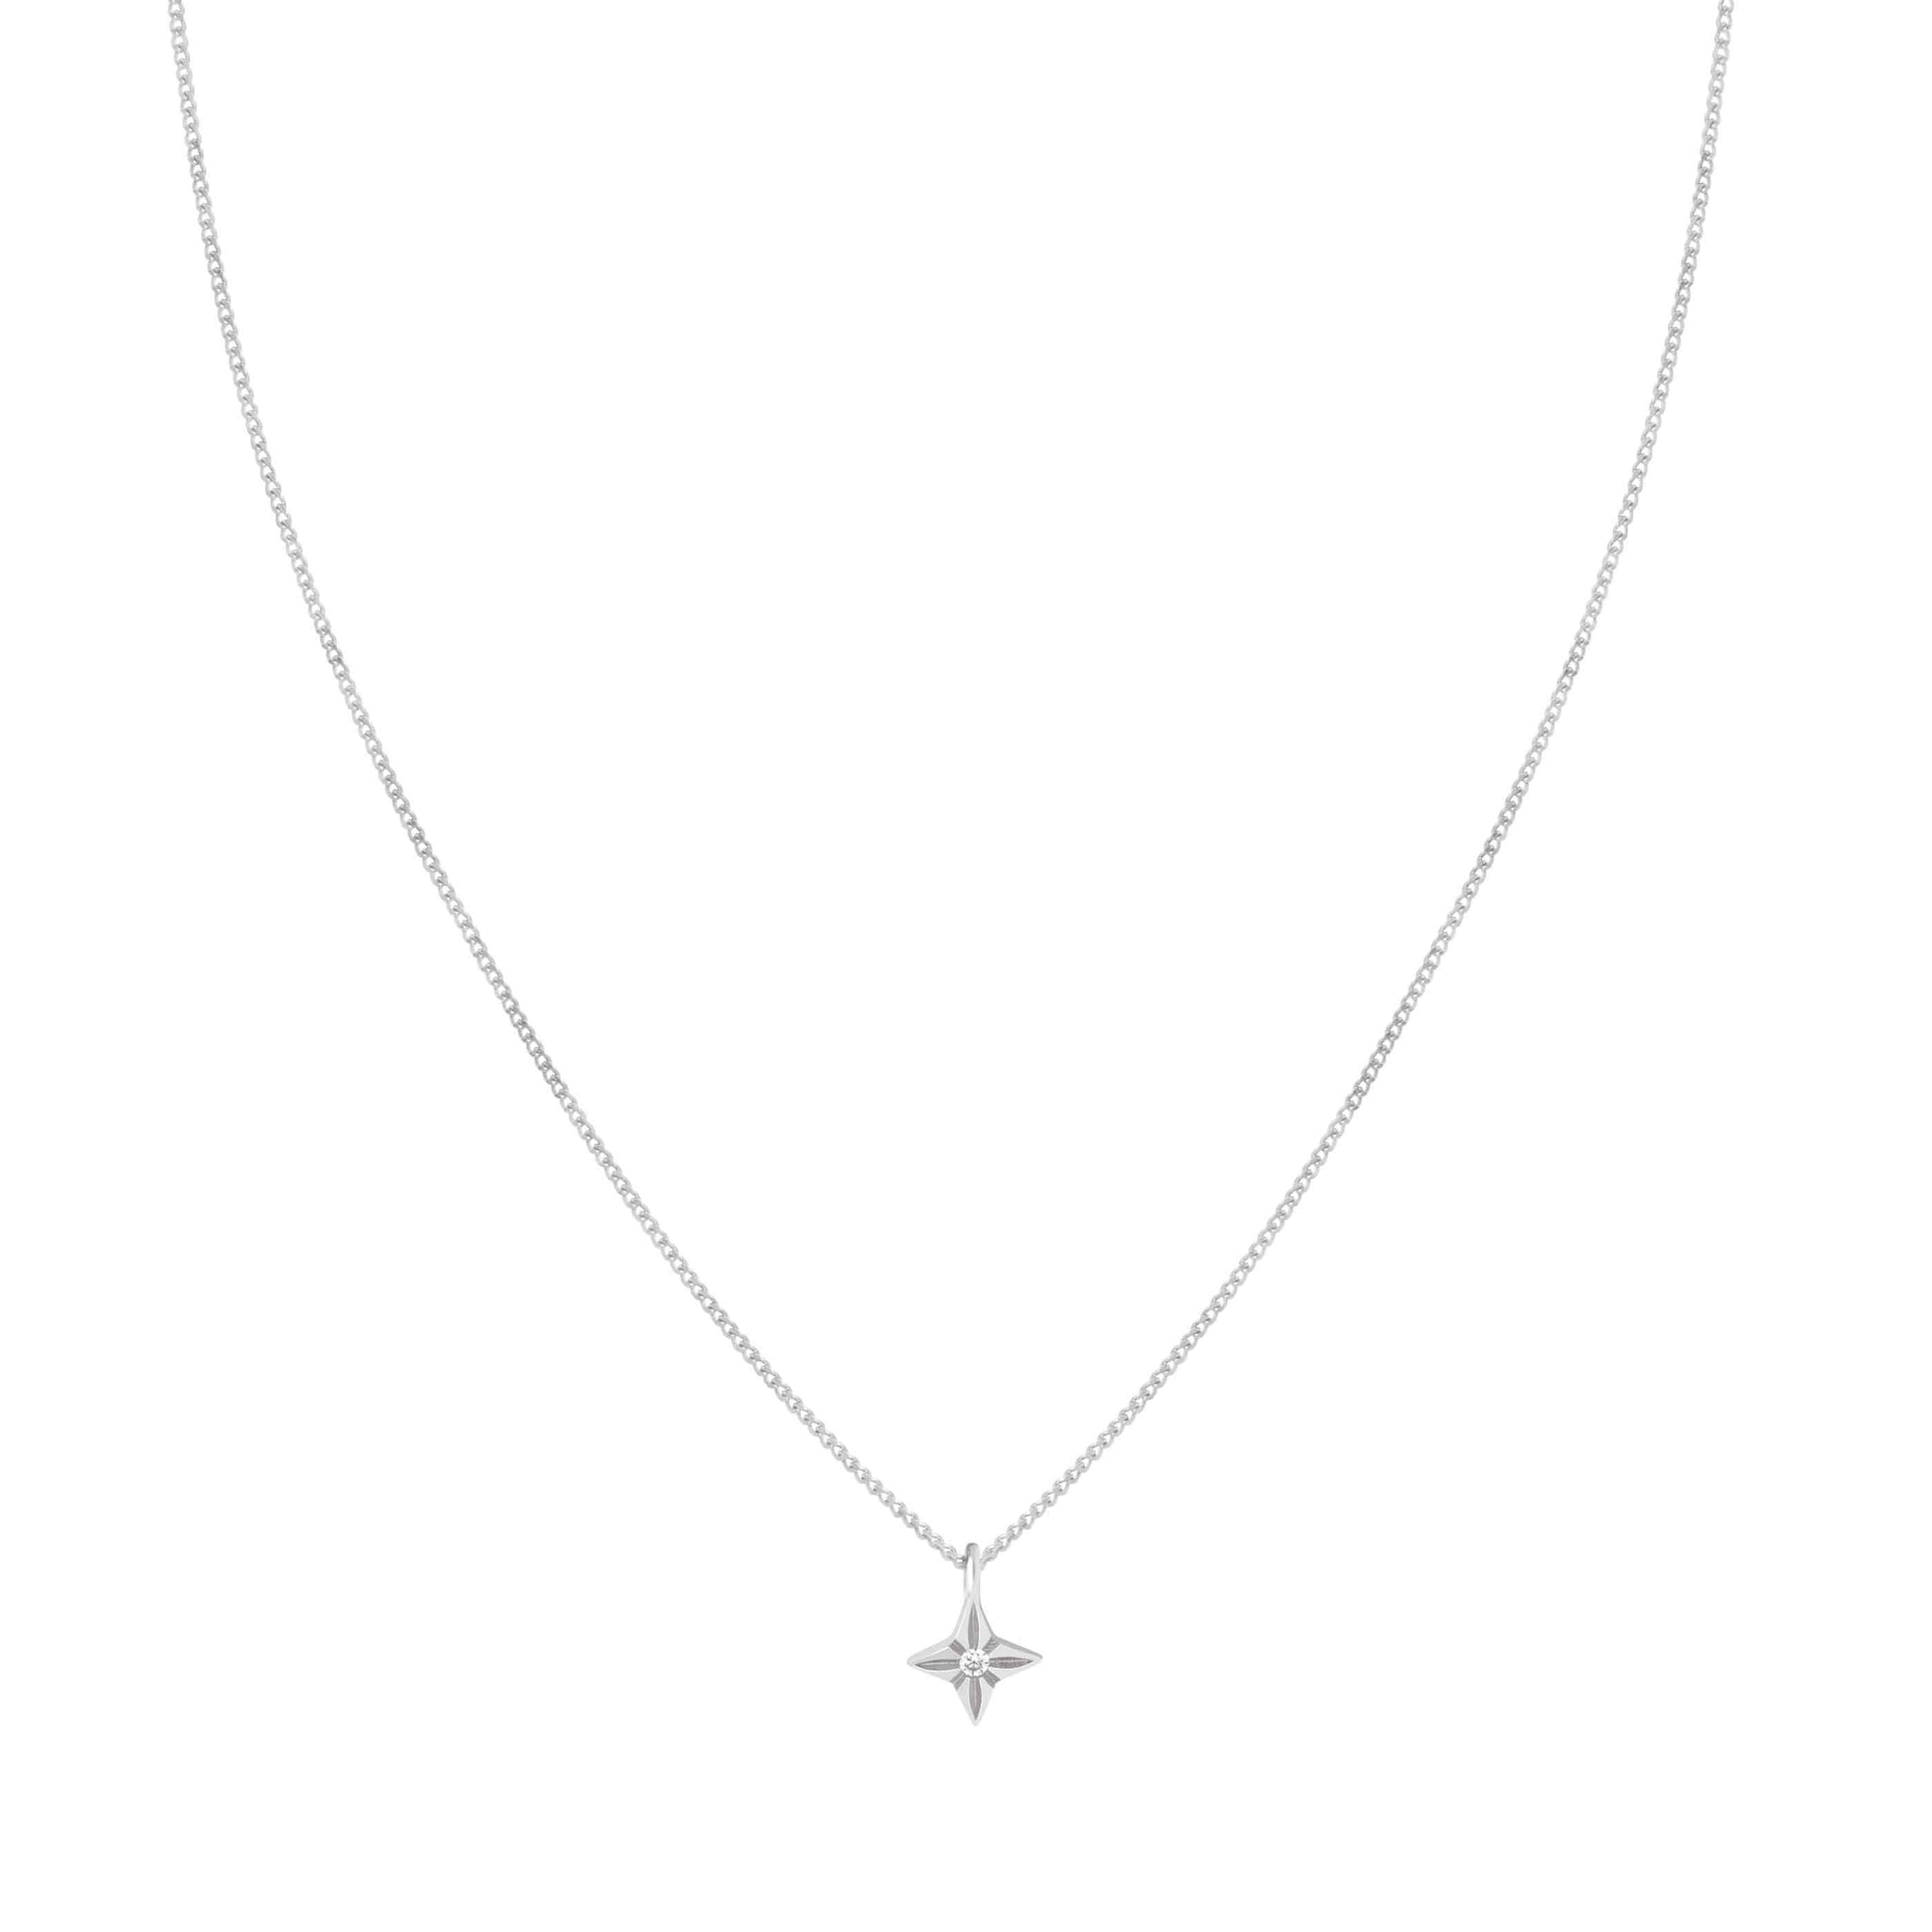 Etched Star Pendant Necklace in Silver